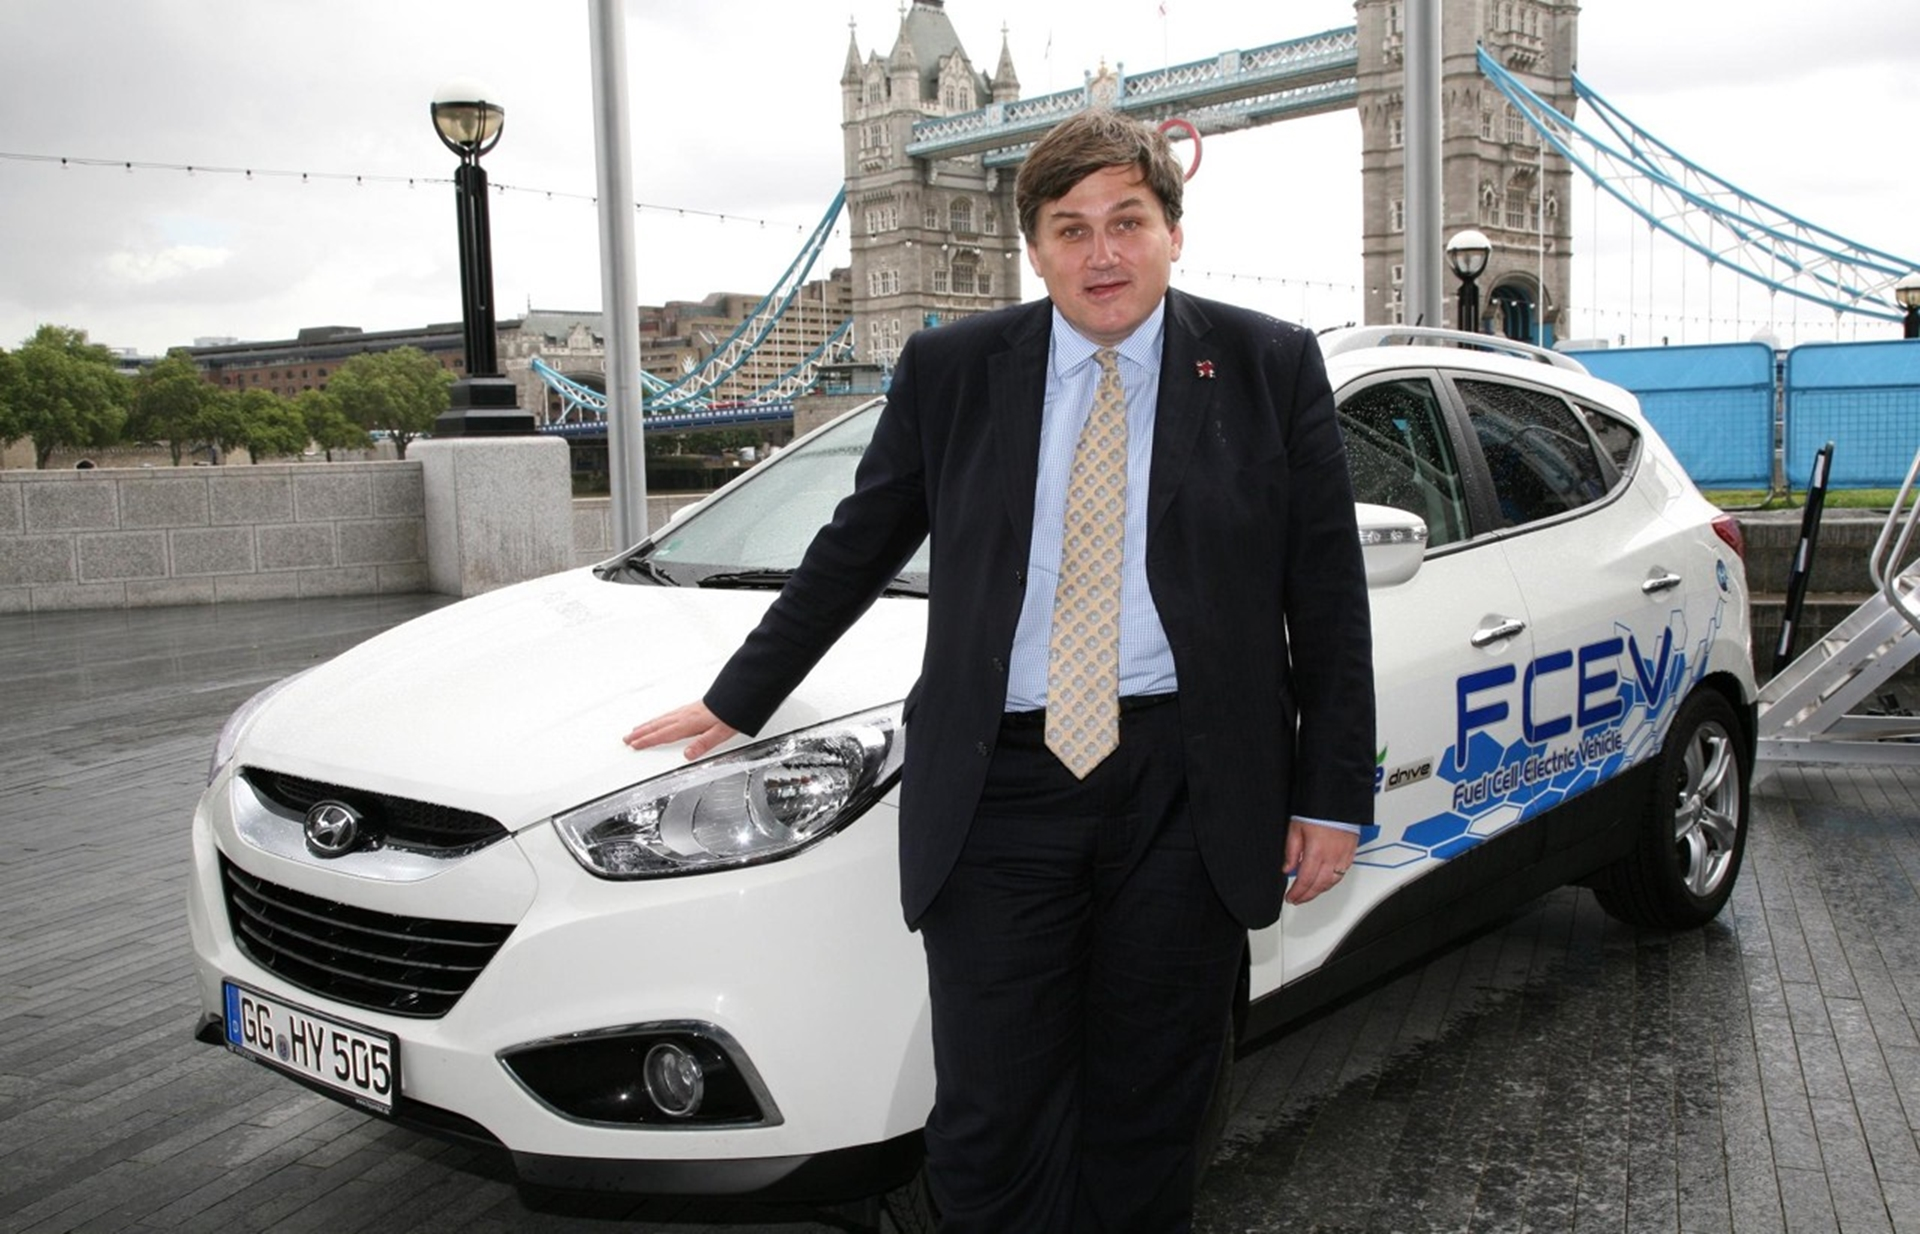 London Deputy Mayor Kit Malthouse